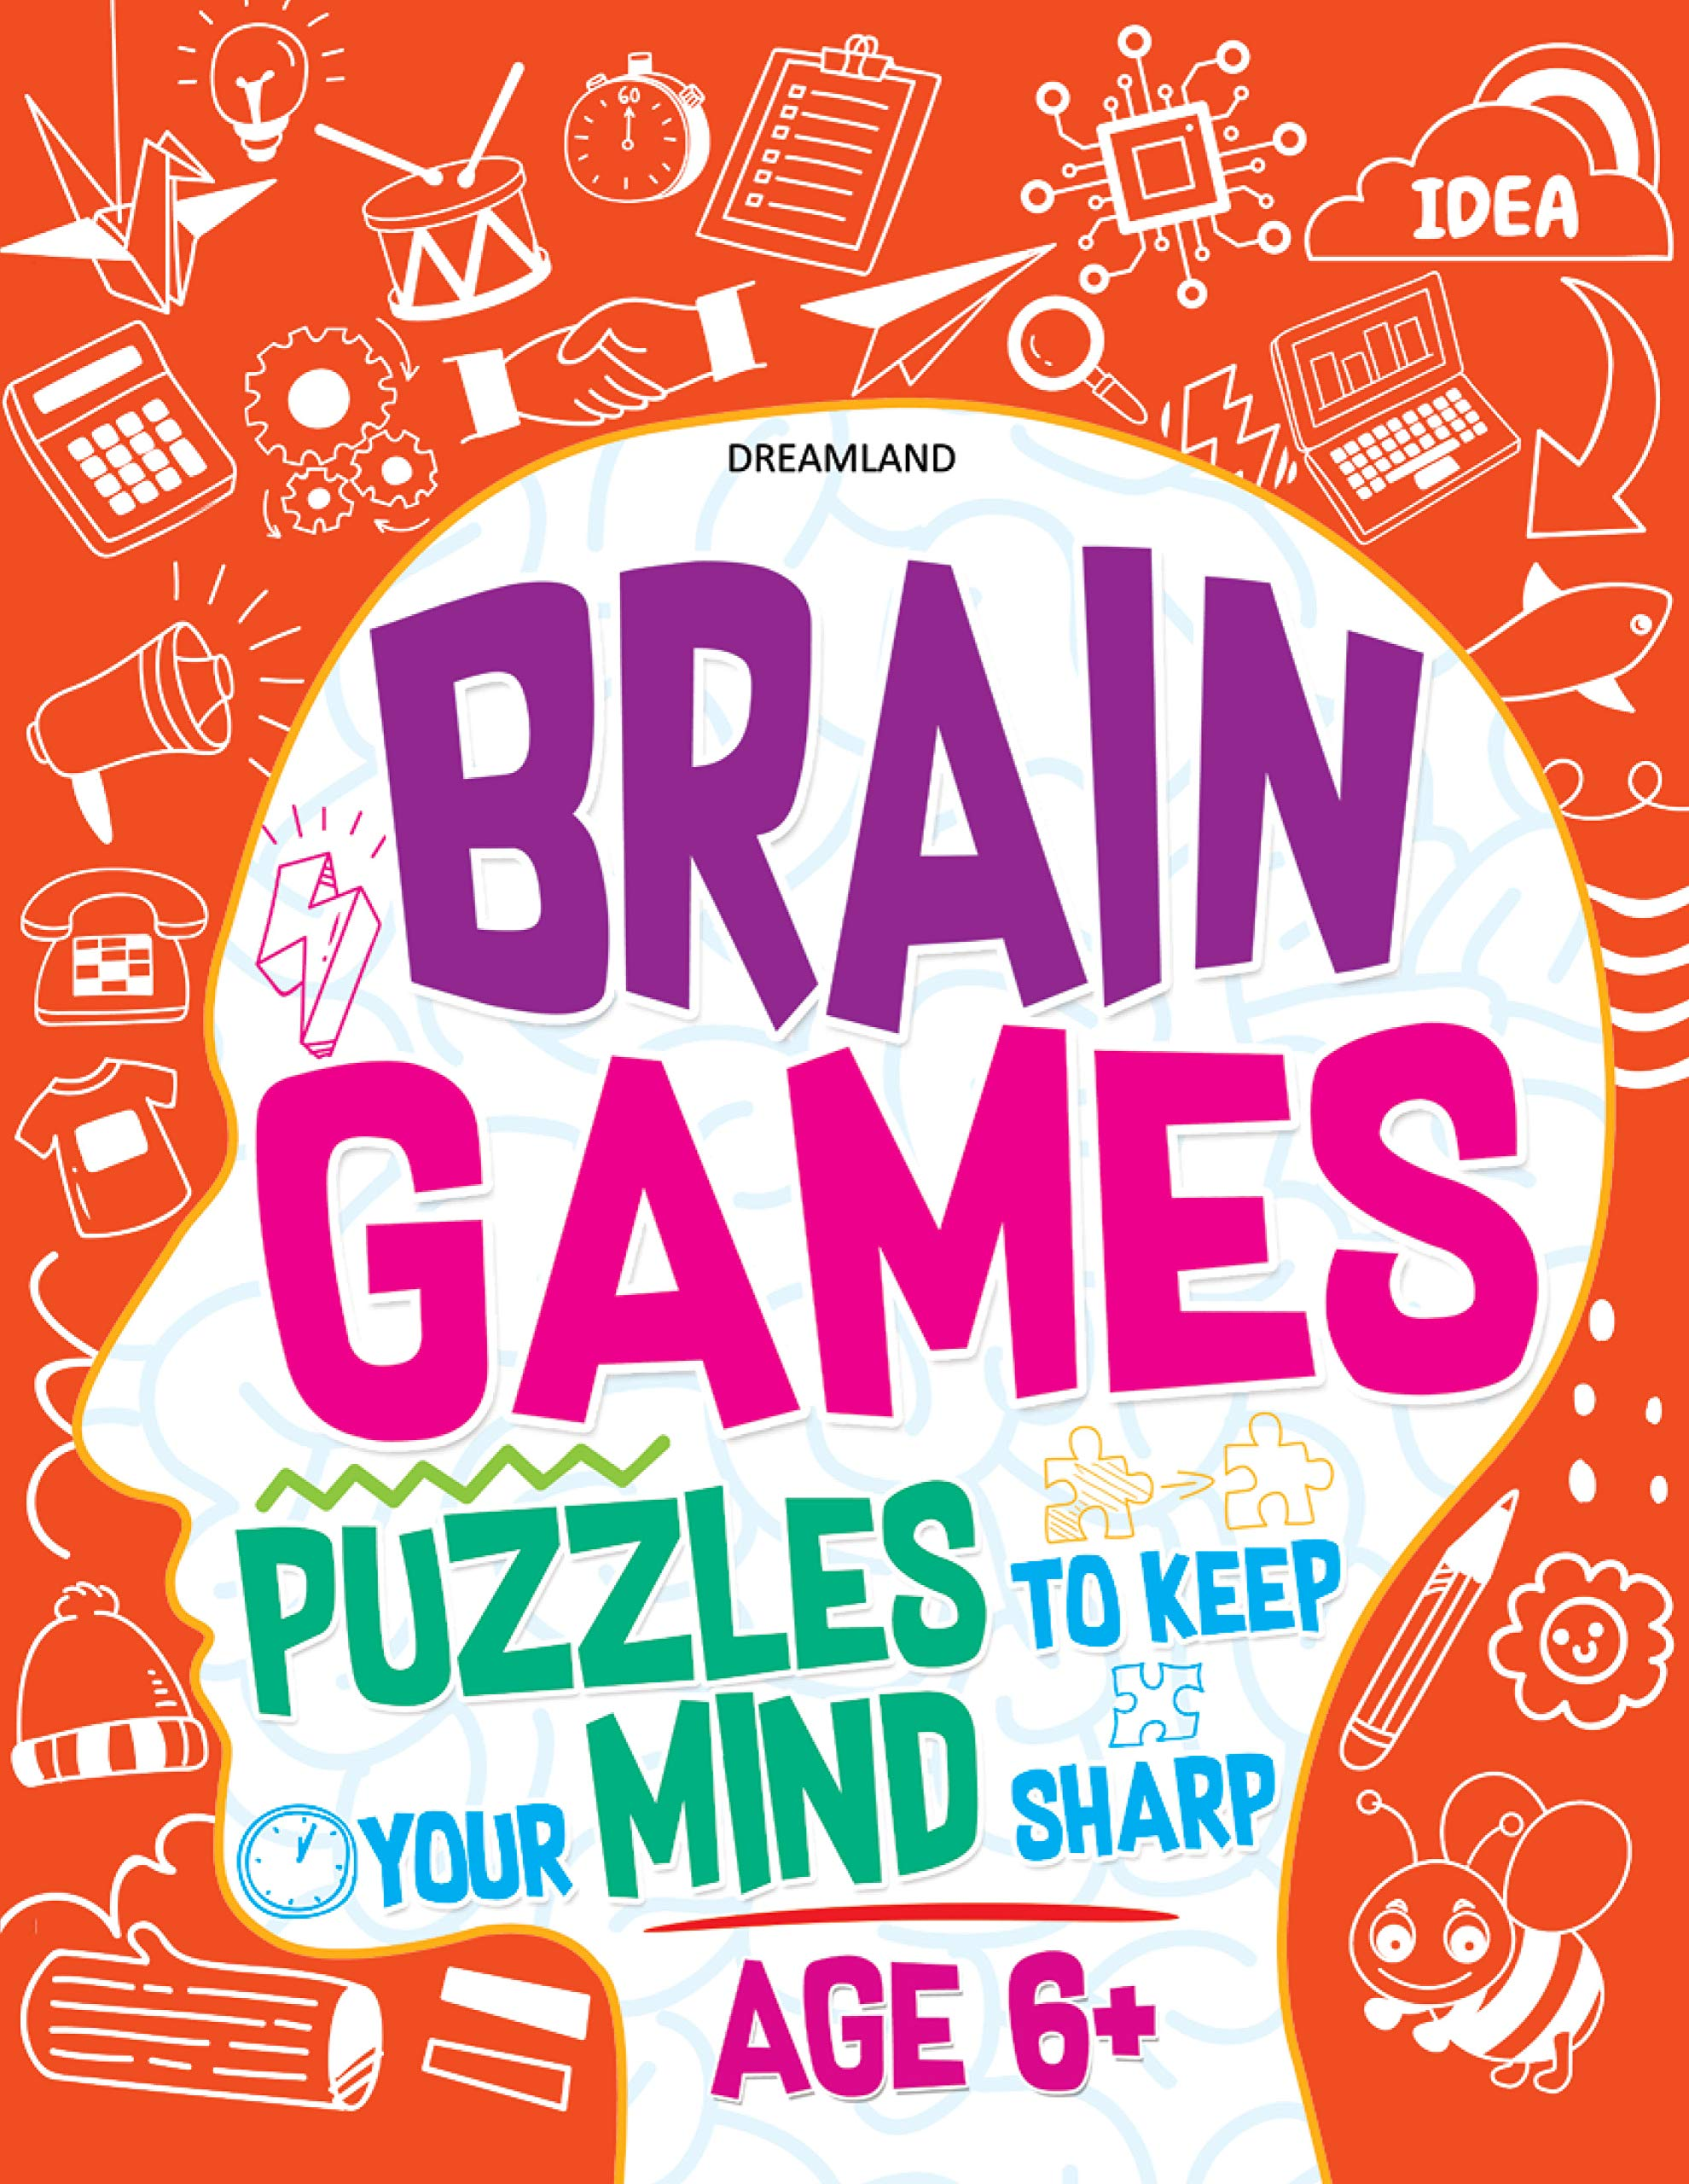 Brain Games (Puzzles to keep your Mind sharp Age 6+)